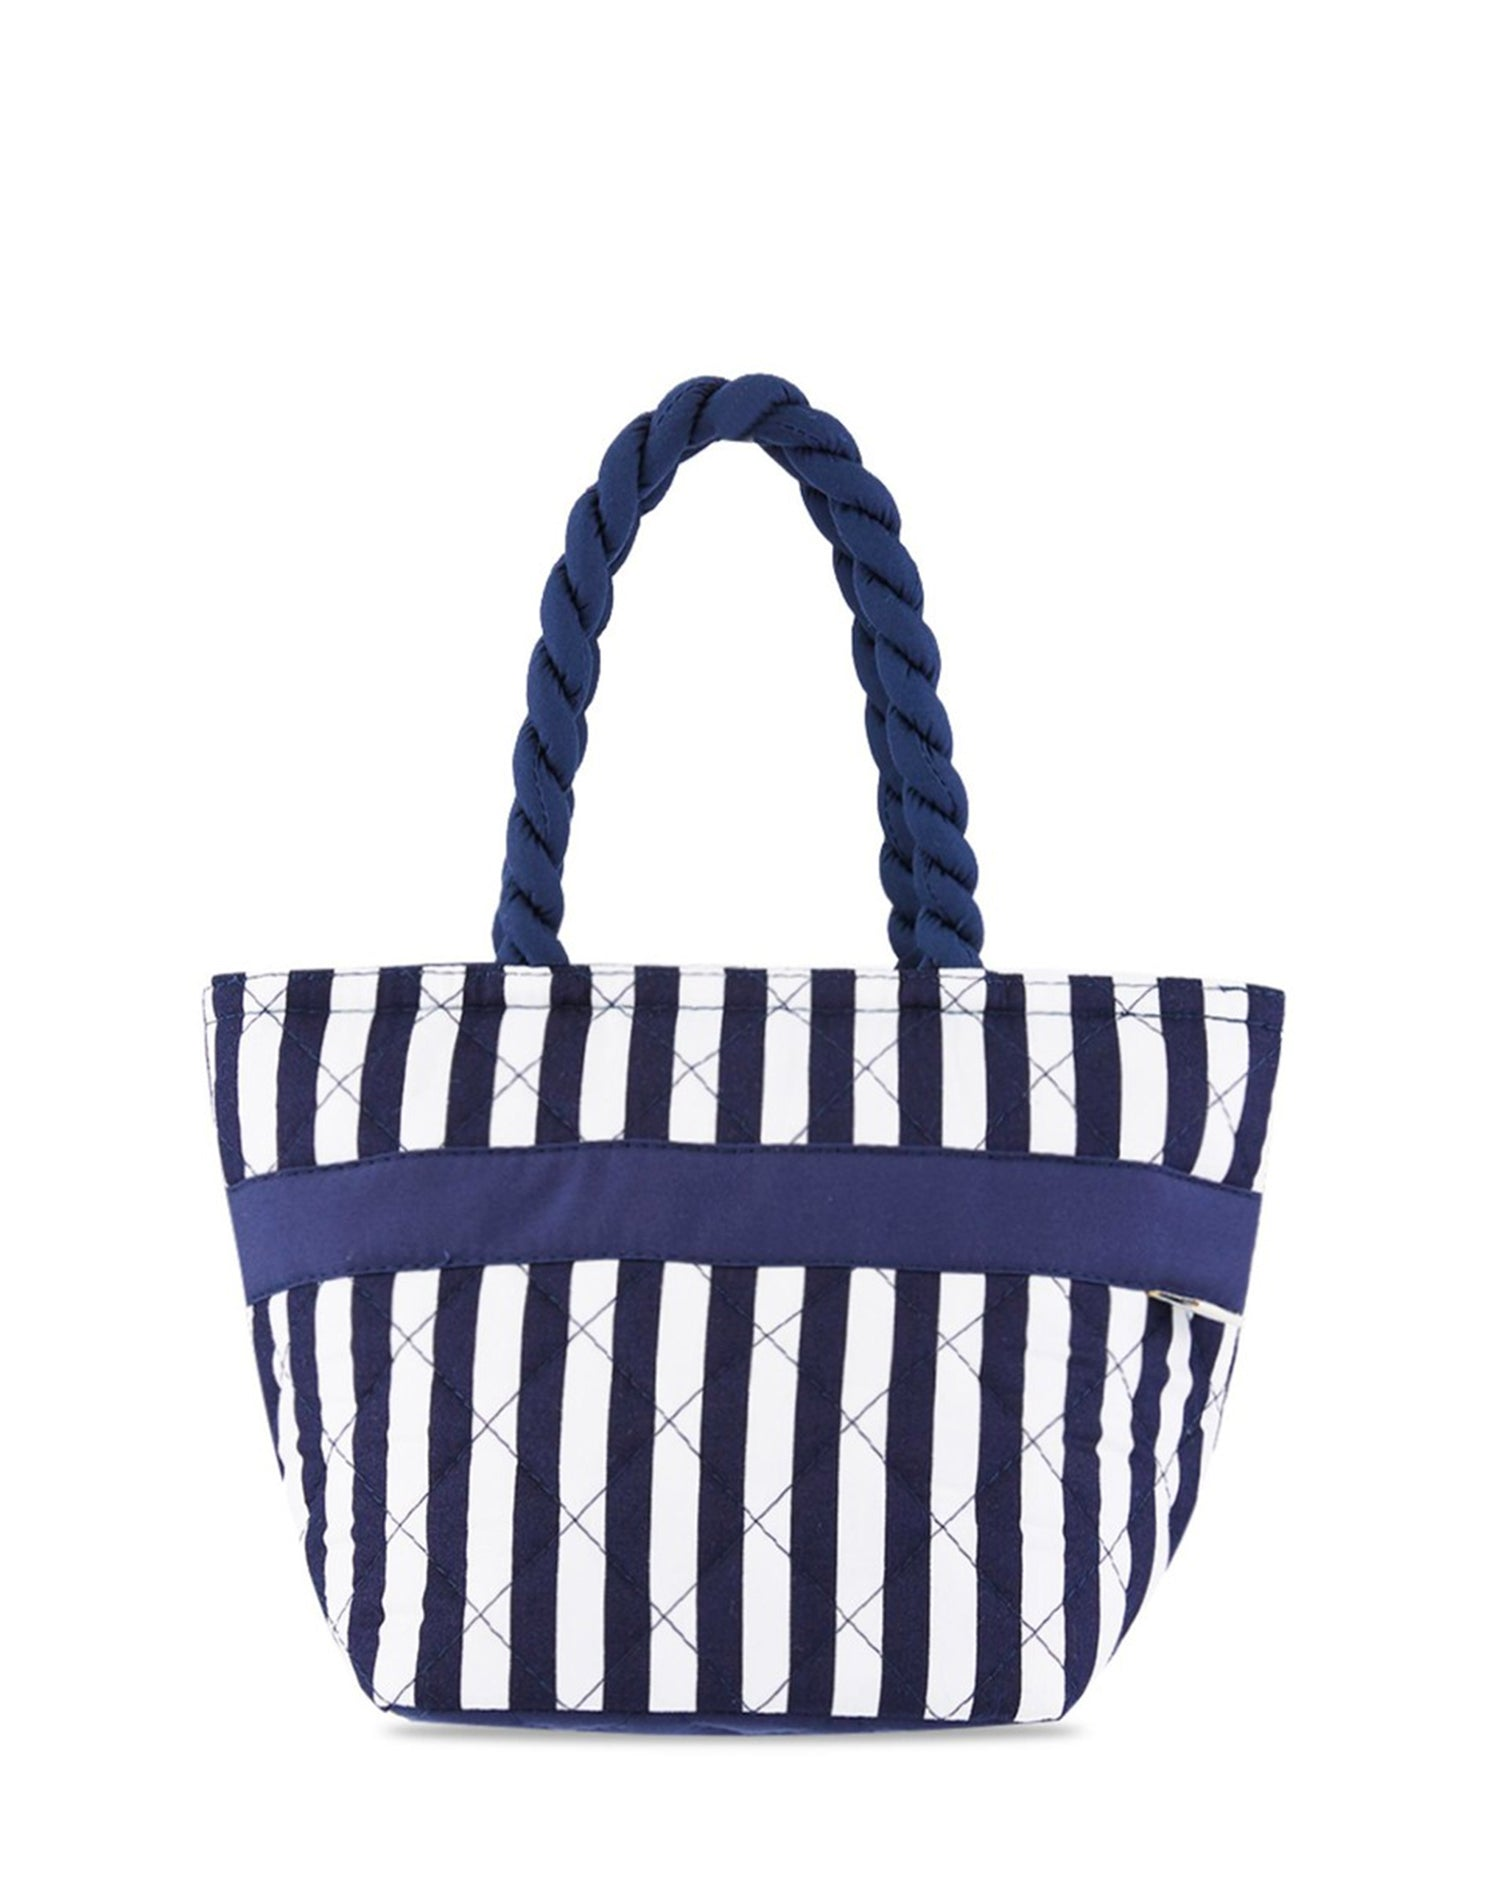 Striped Quilted Cotton Handbag.條紋絎縫棉布手提袋